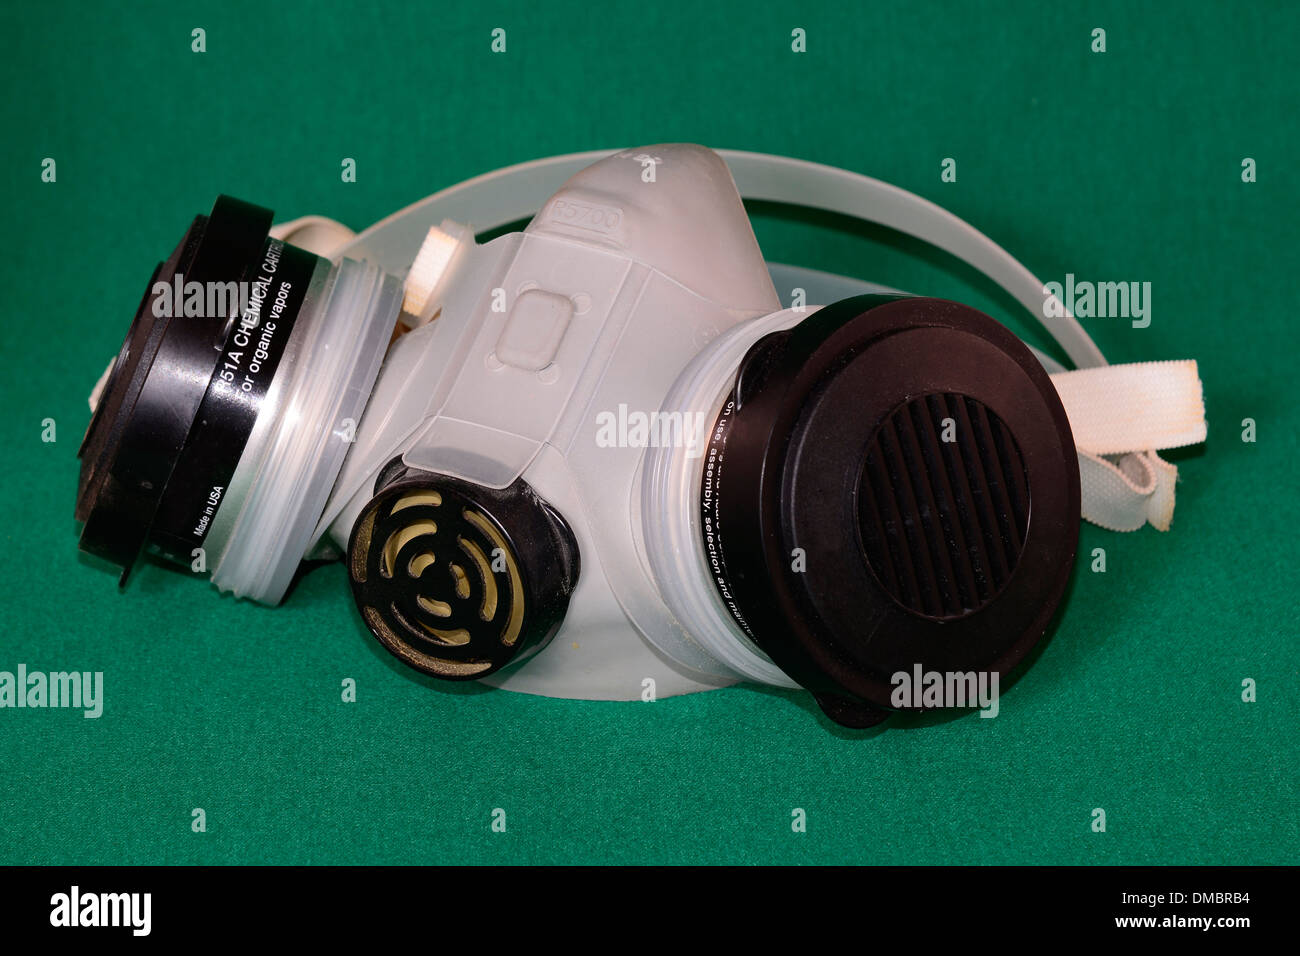 Half face protective safety mask or respirator on green background - Stock Image